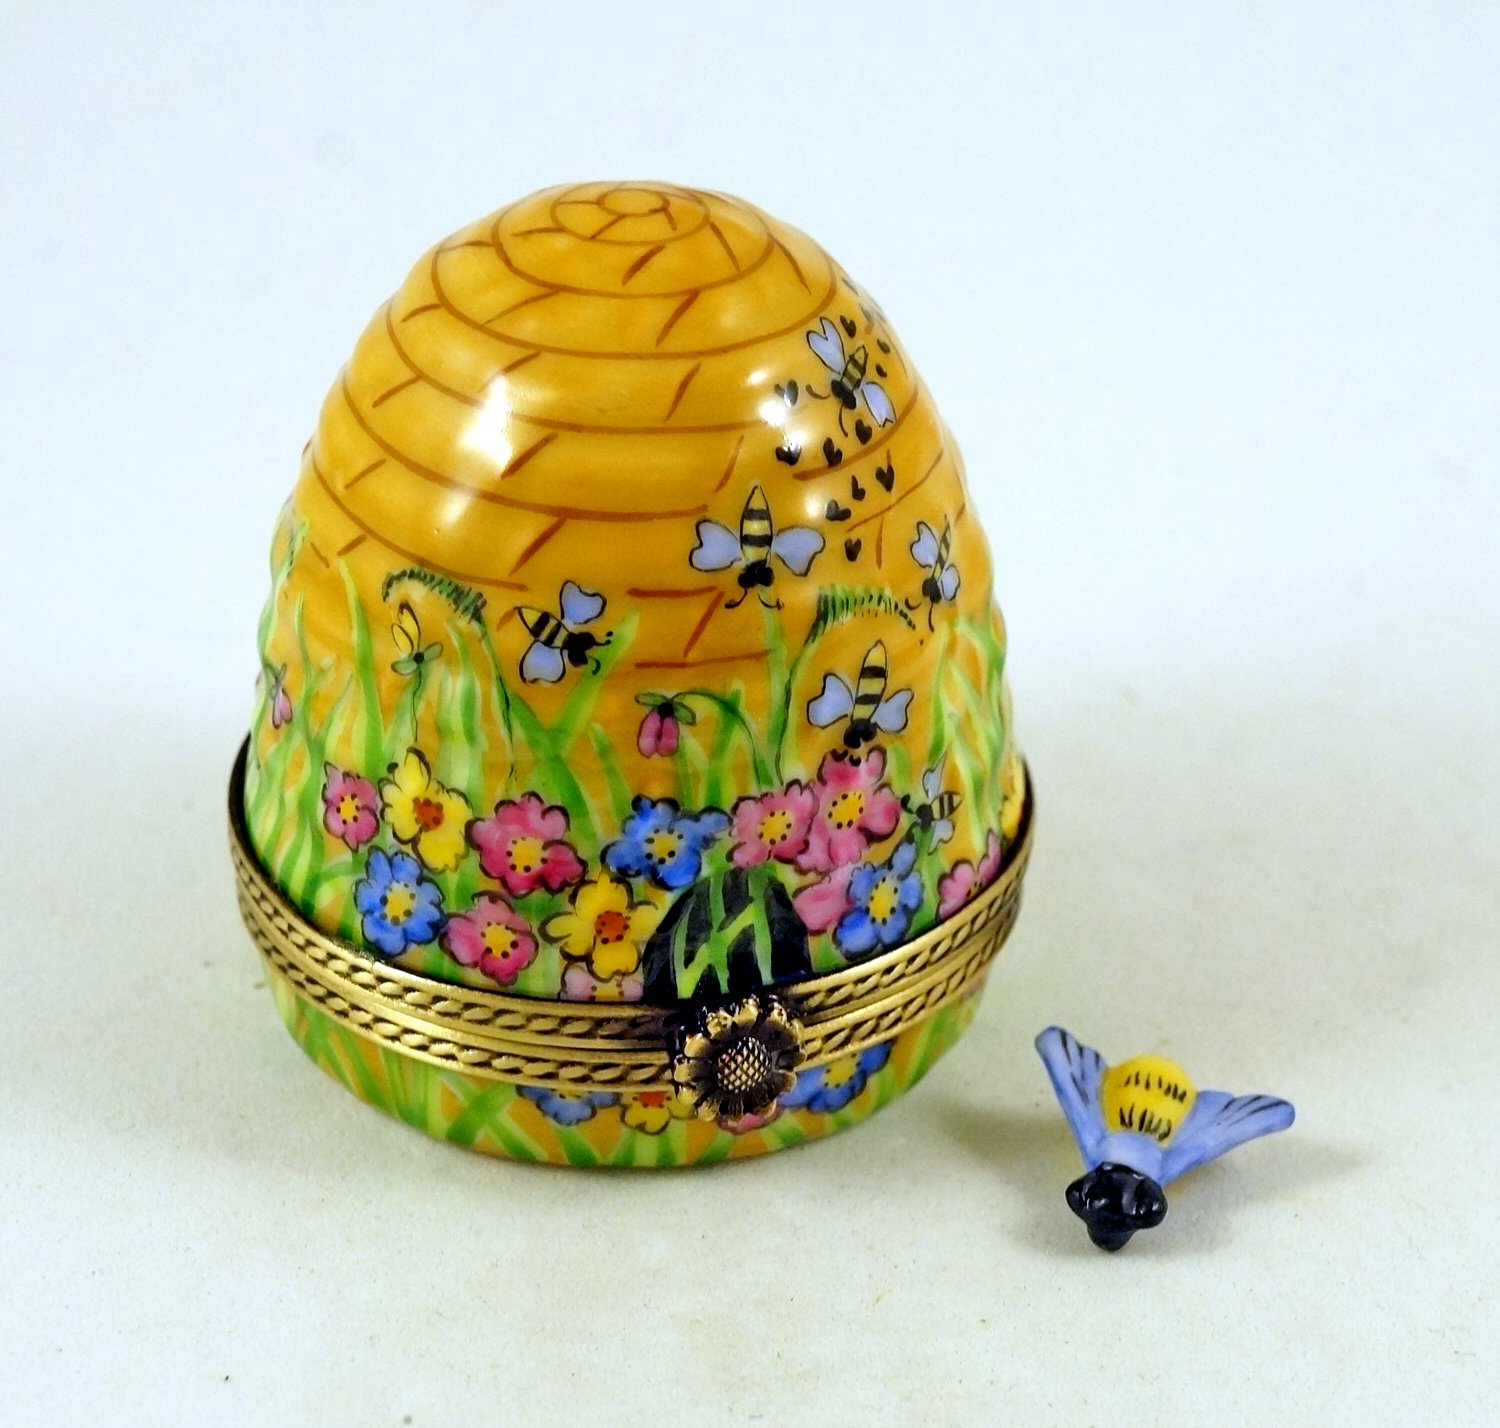 Authentic French Porcelain Hand Painted Limoges Trinket Box Amazing Colorful Beehive with Miniature Porcelain Removable Bee by Authentic Limoges Boxes (Image #1)